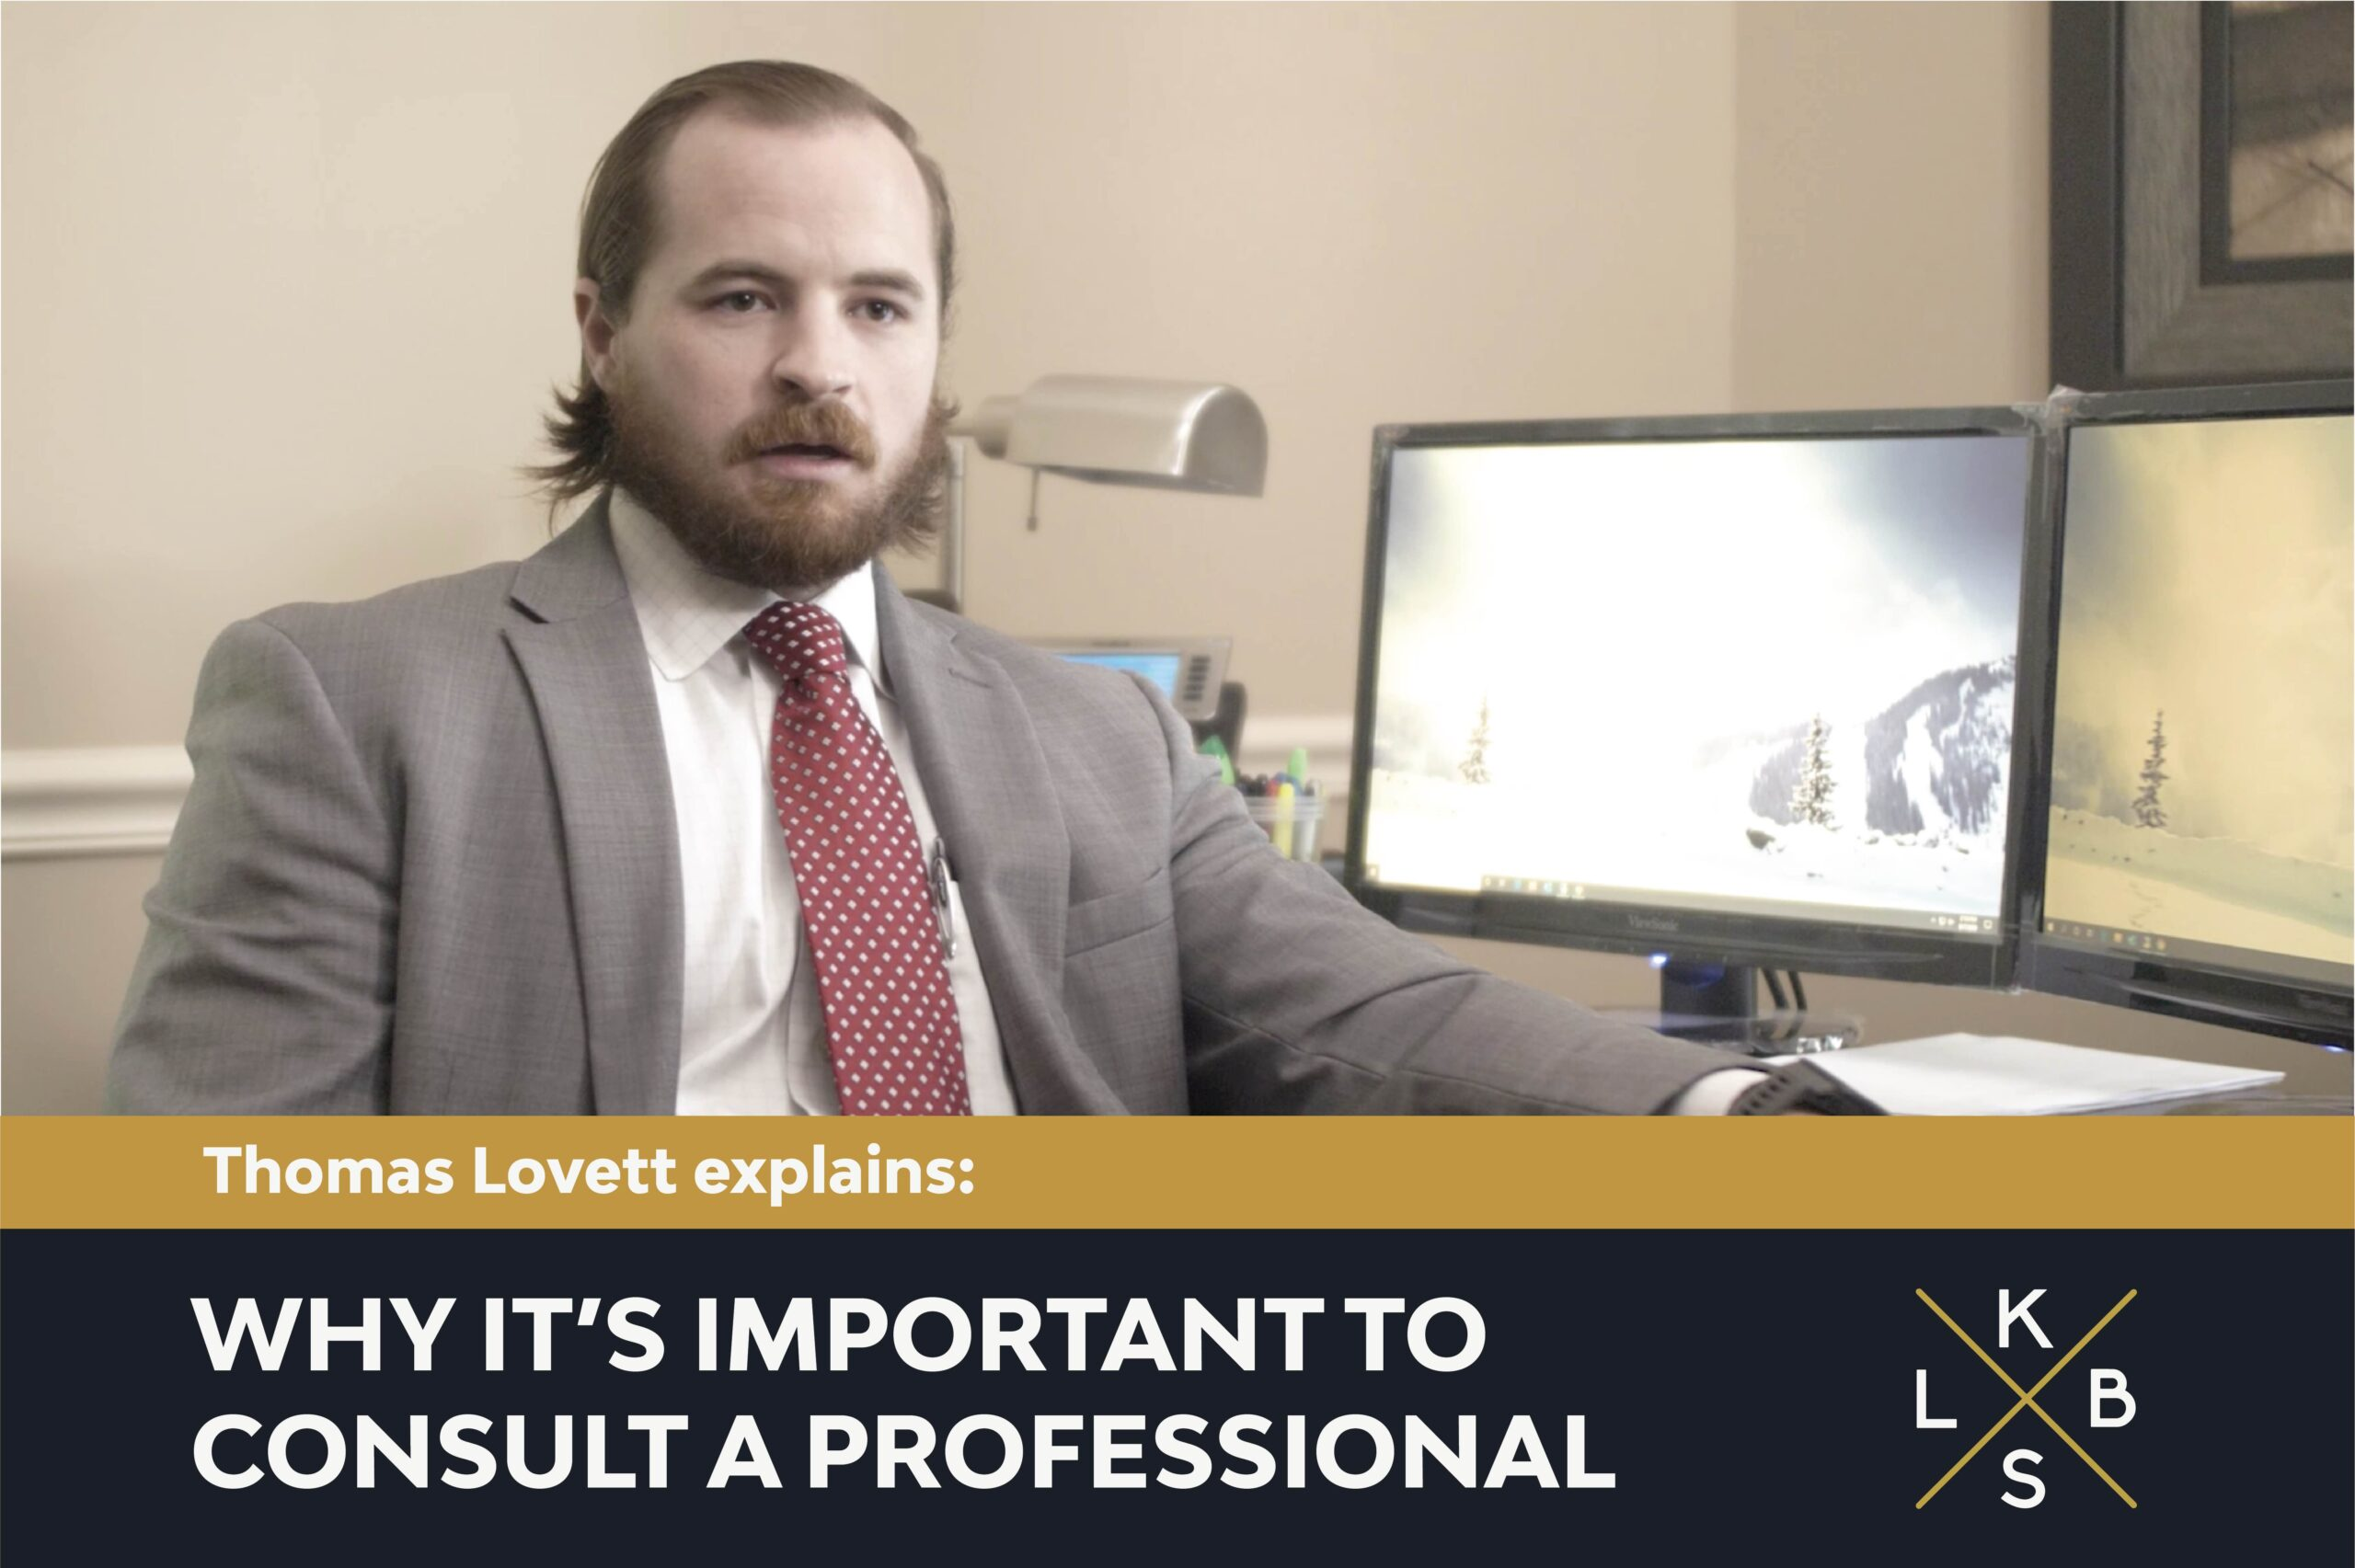 Thomas Lovett explaining why it's important to consult a professional bankruptcy attorney.